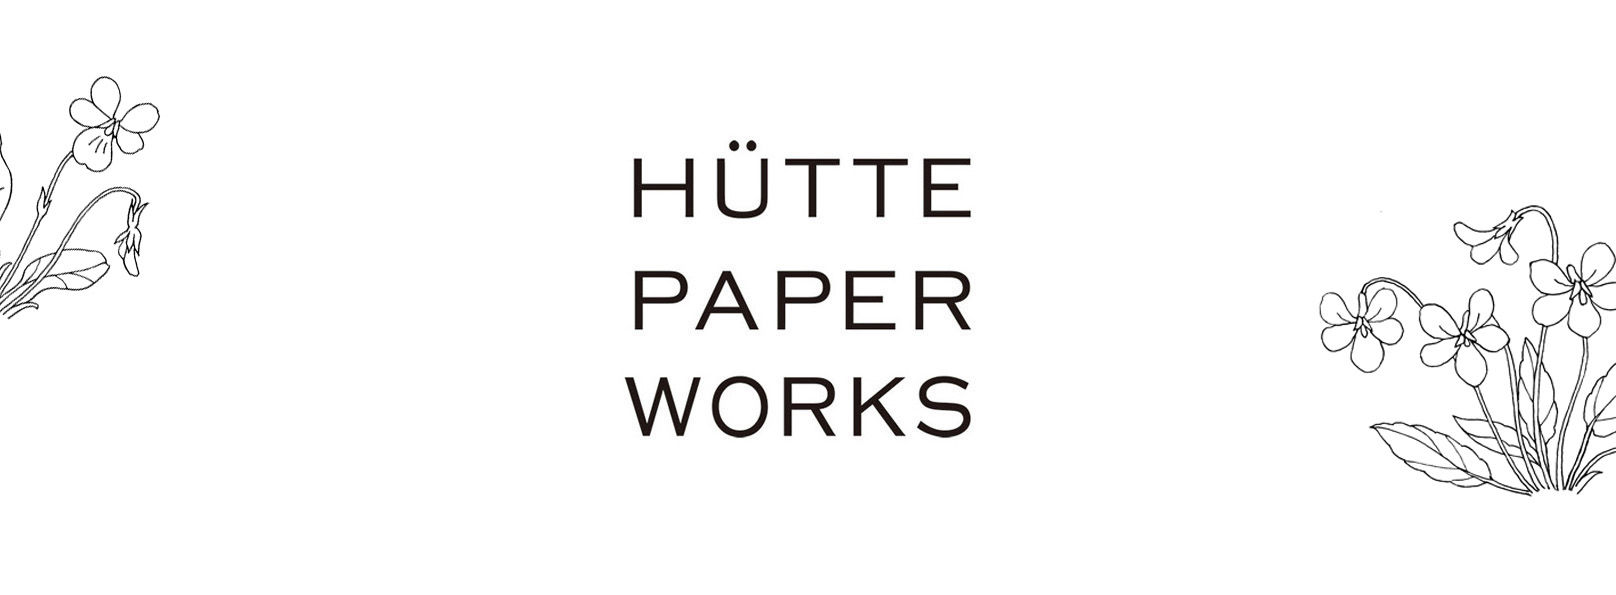 Hütte paper works